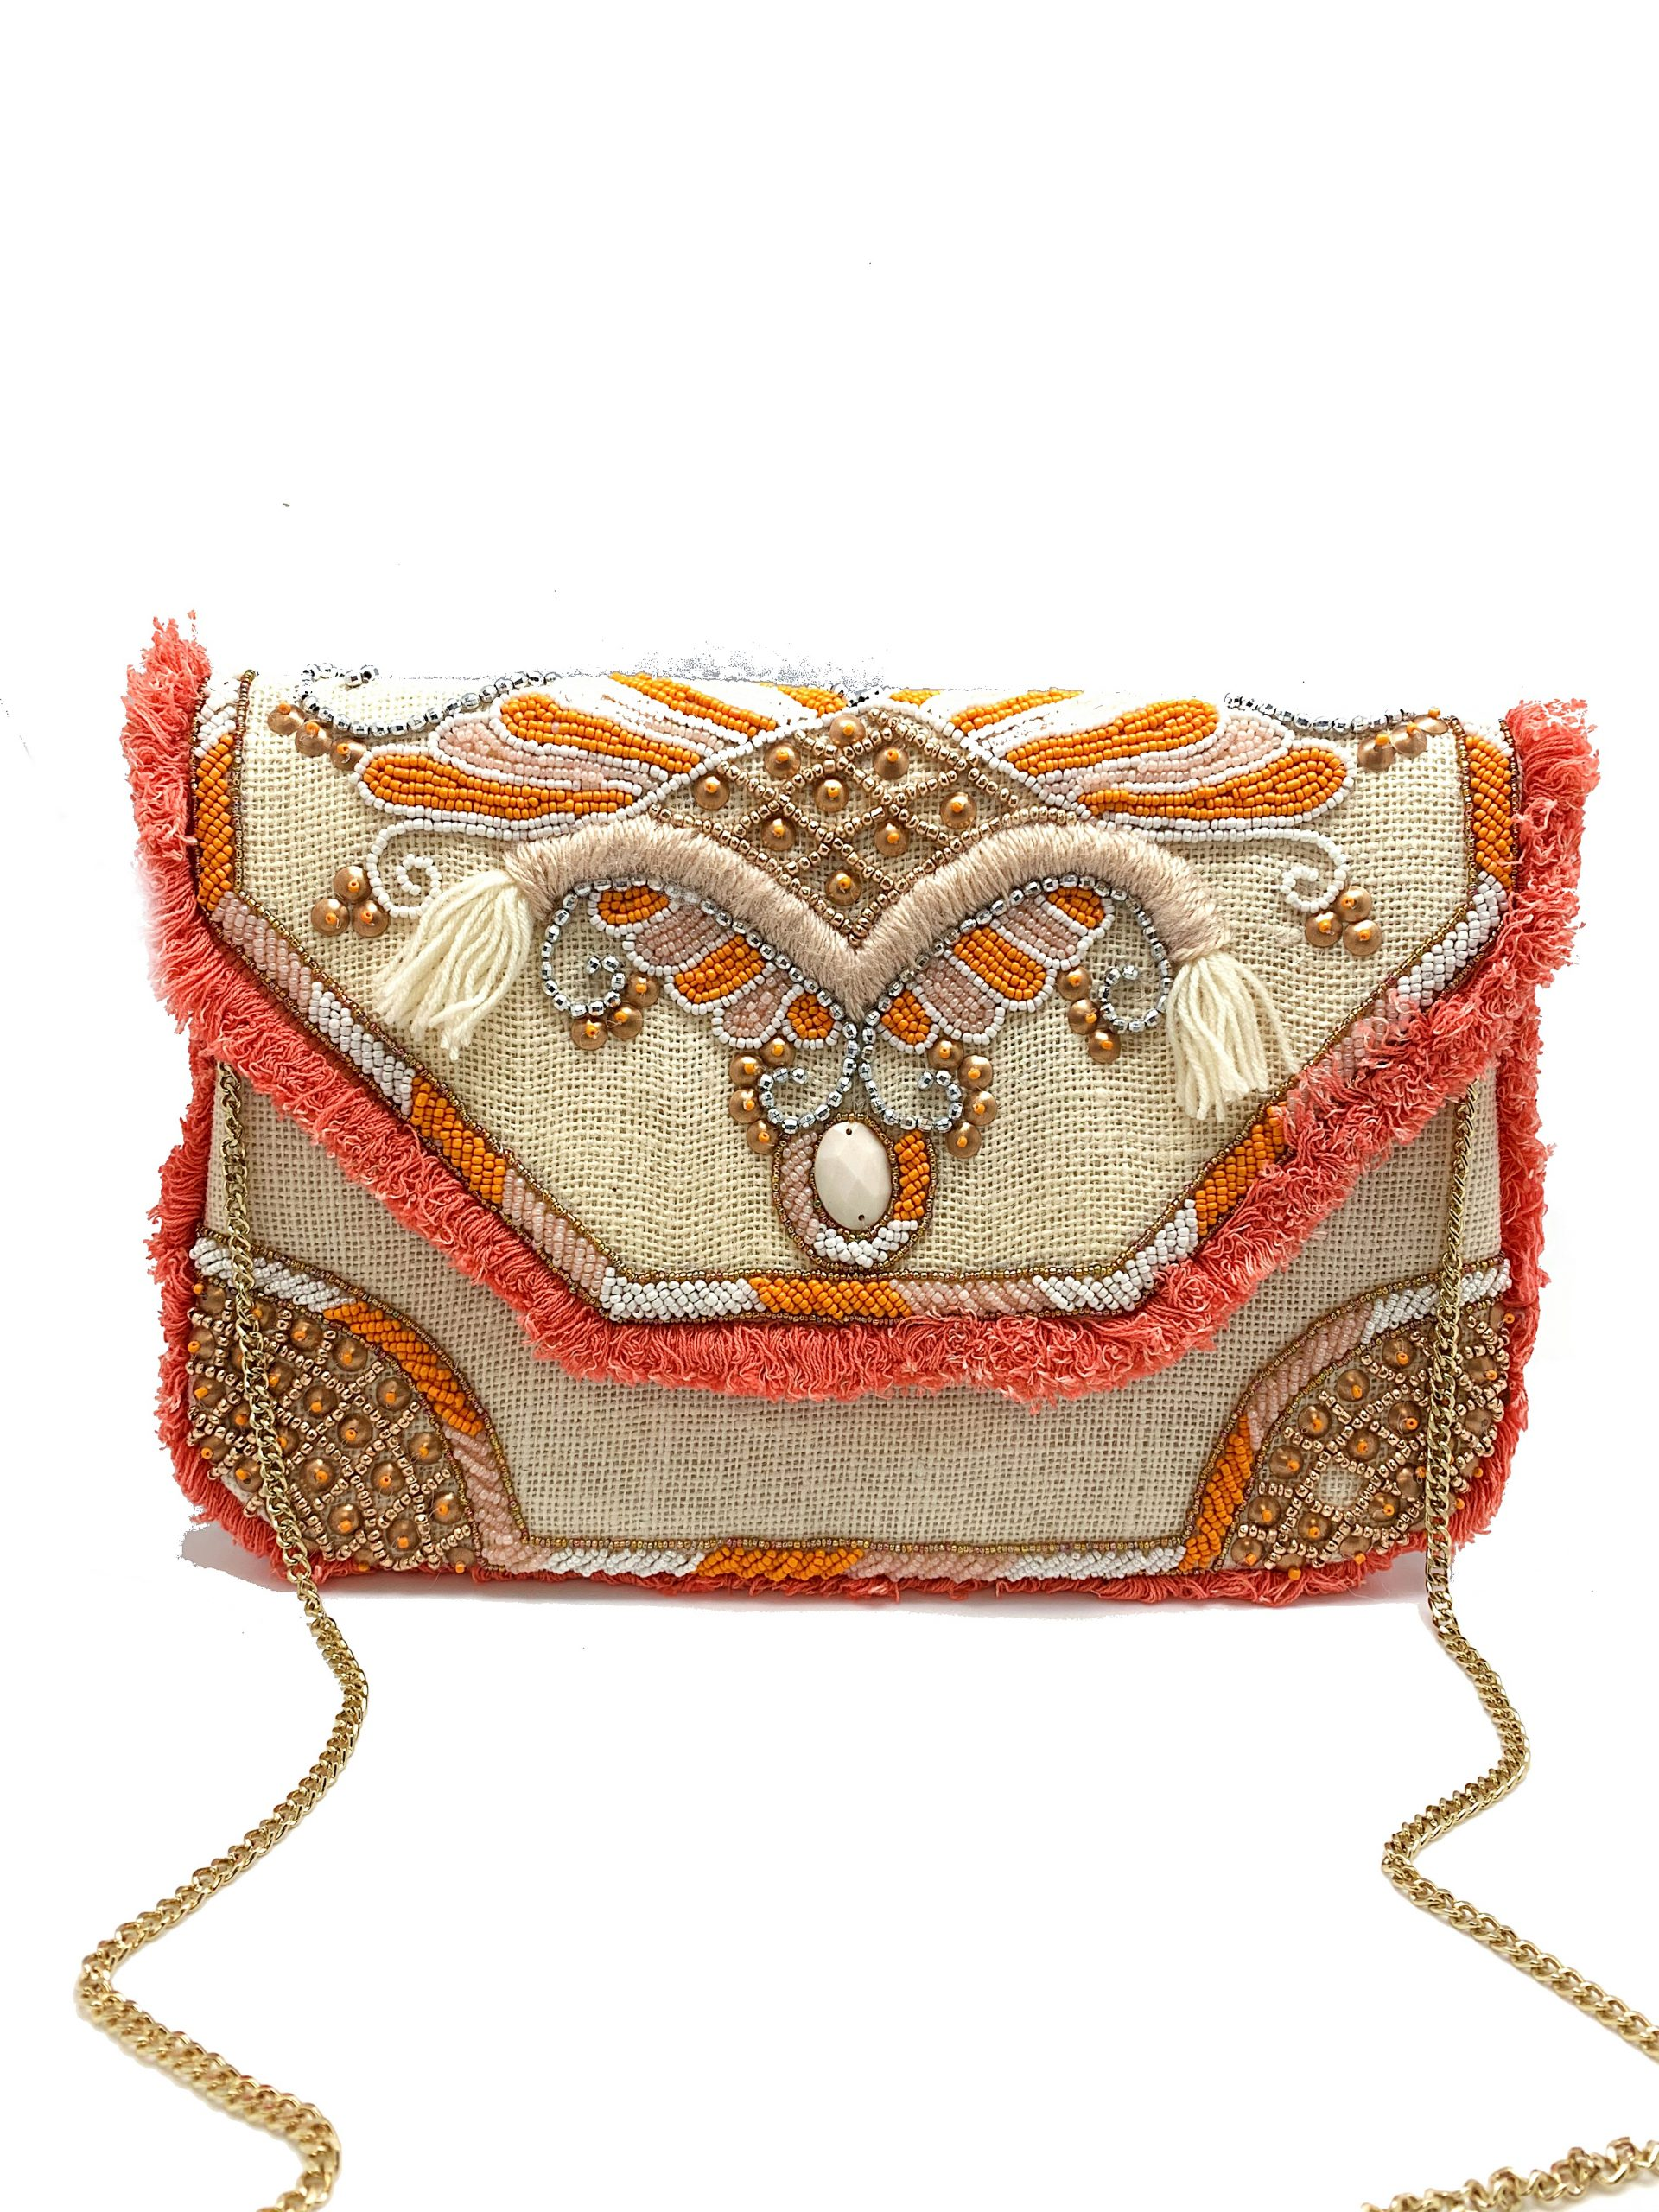 NATURAL BURLAP WITH CORAL FRINGE CLUTCH